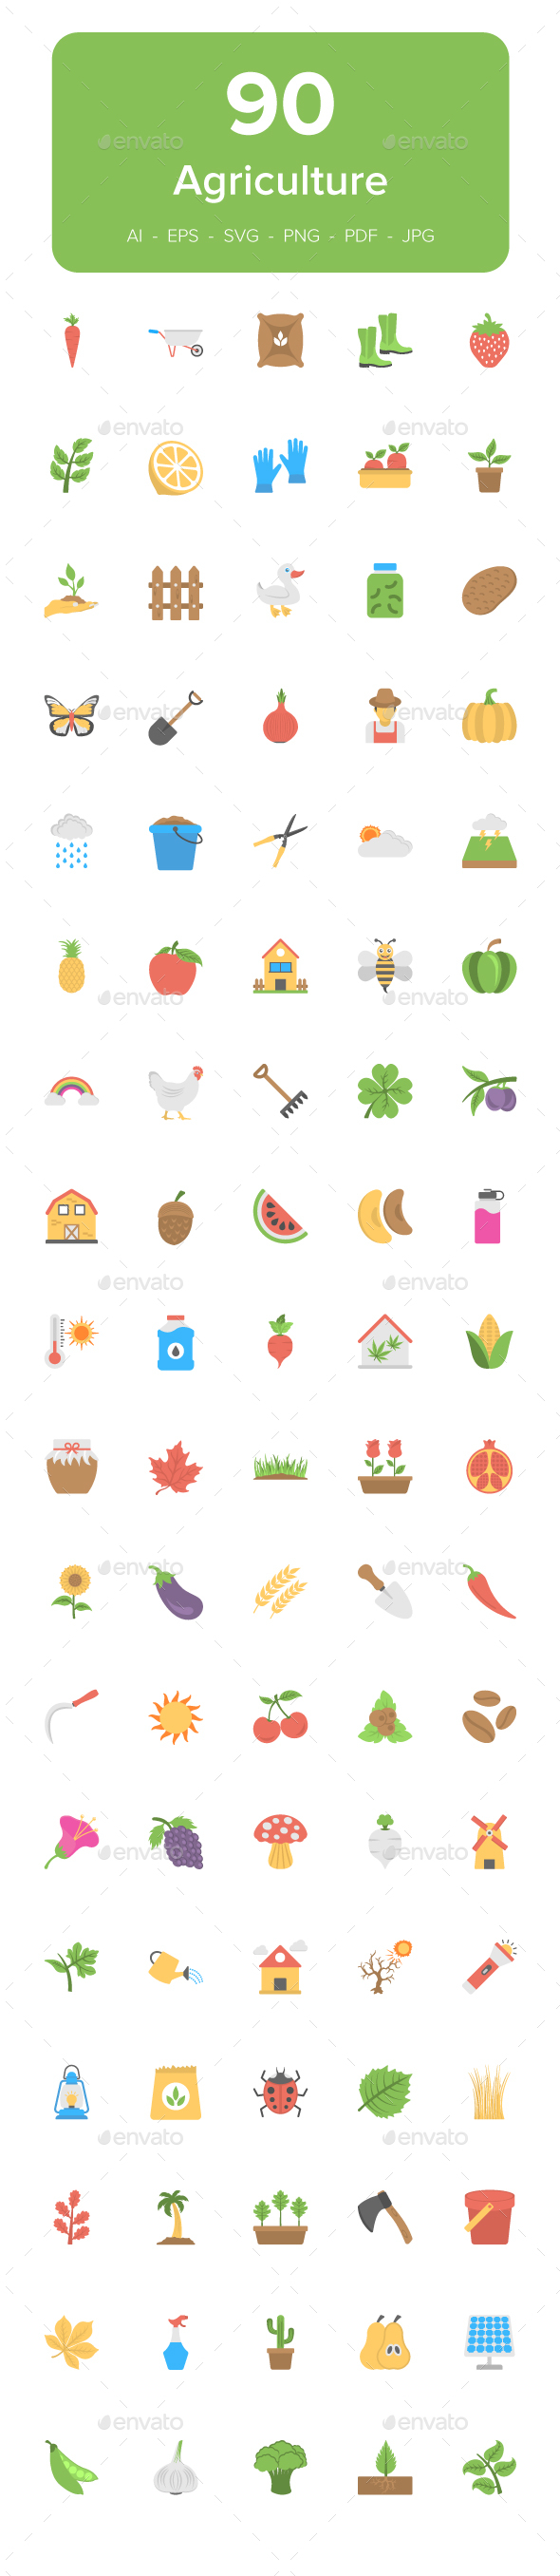 90 Agriculture Flat Vector Icons - Icons